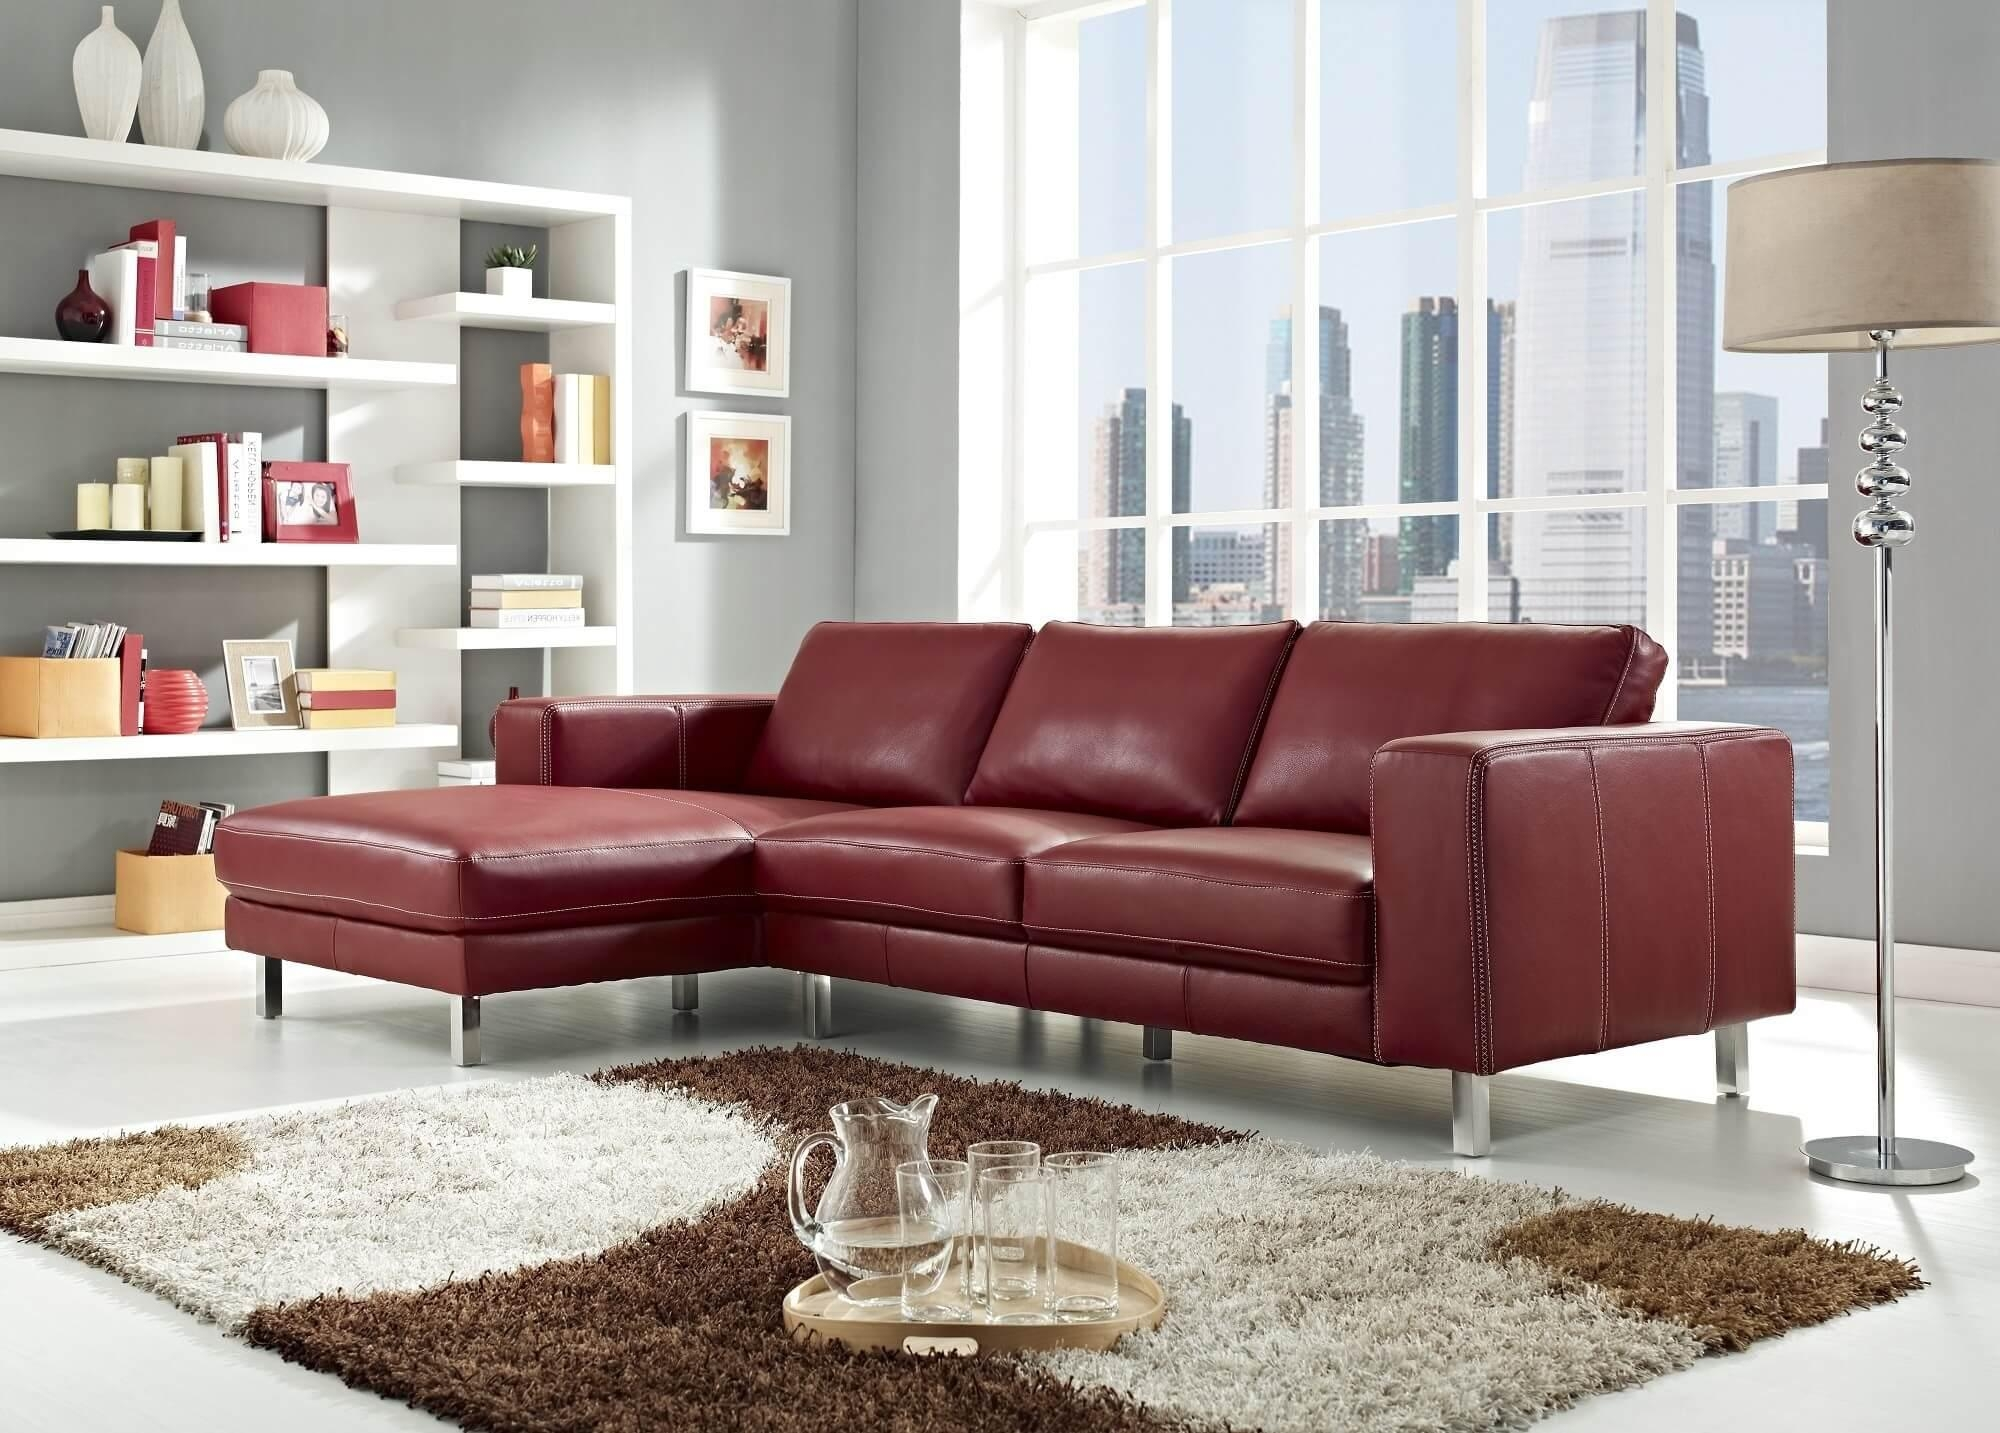 red sofas on sale floral and chairs 20 photos dark leather sofa ideas